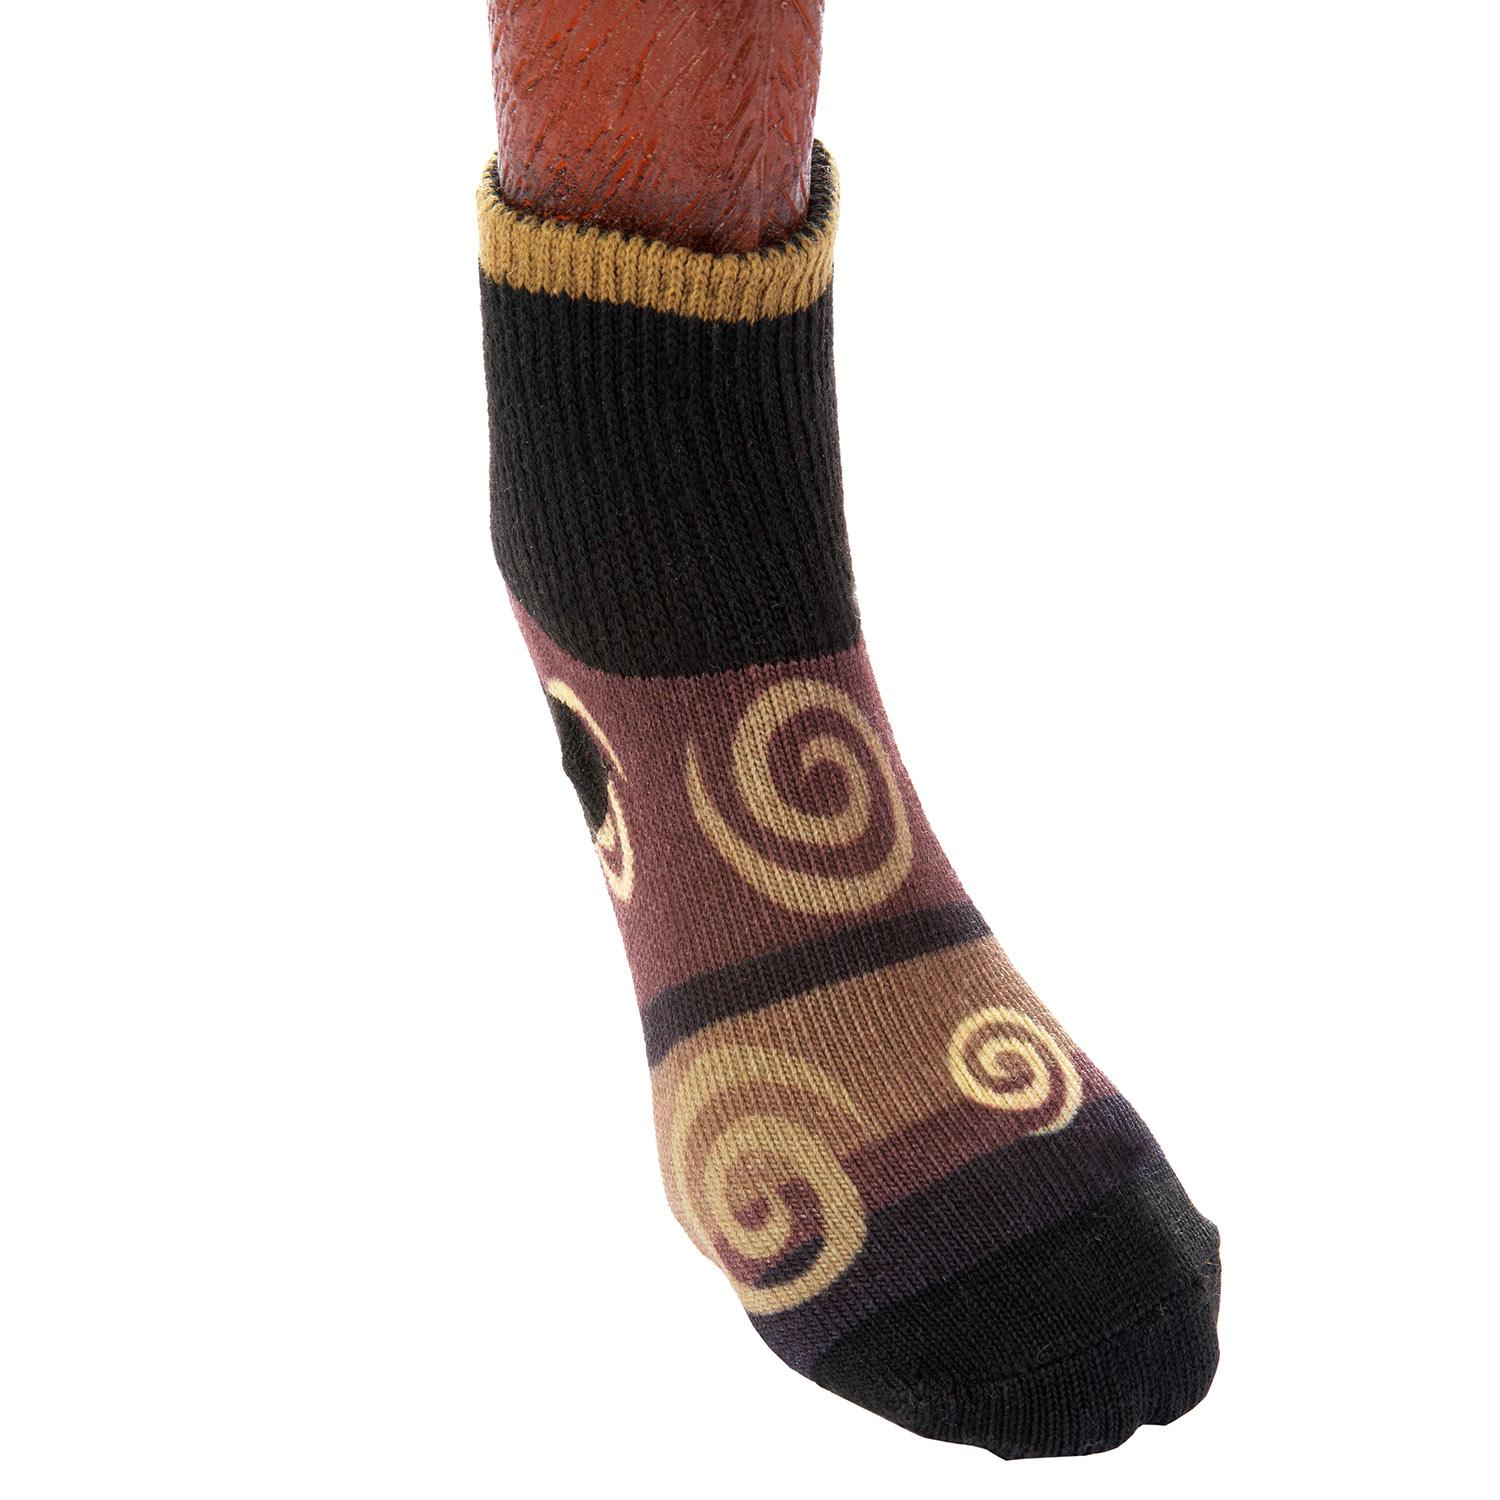 Ultra Paws Doggie Socks - Oakley Brown/Black